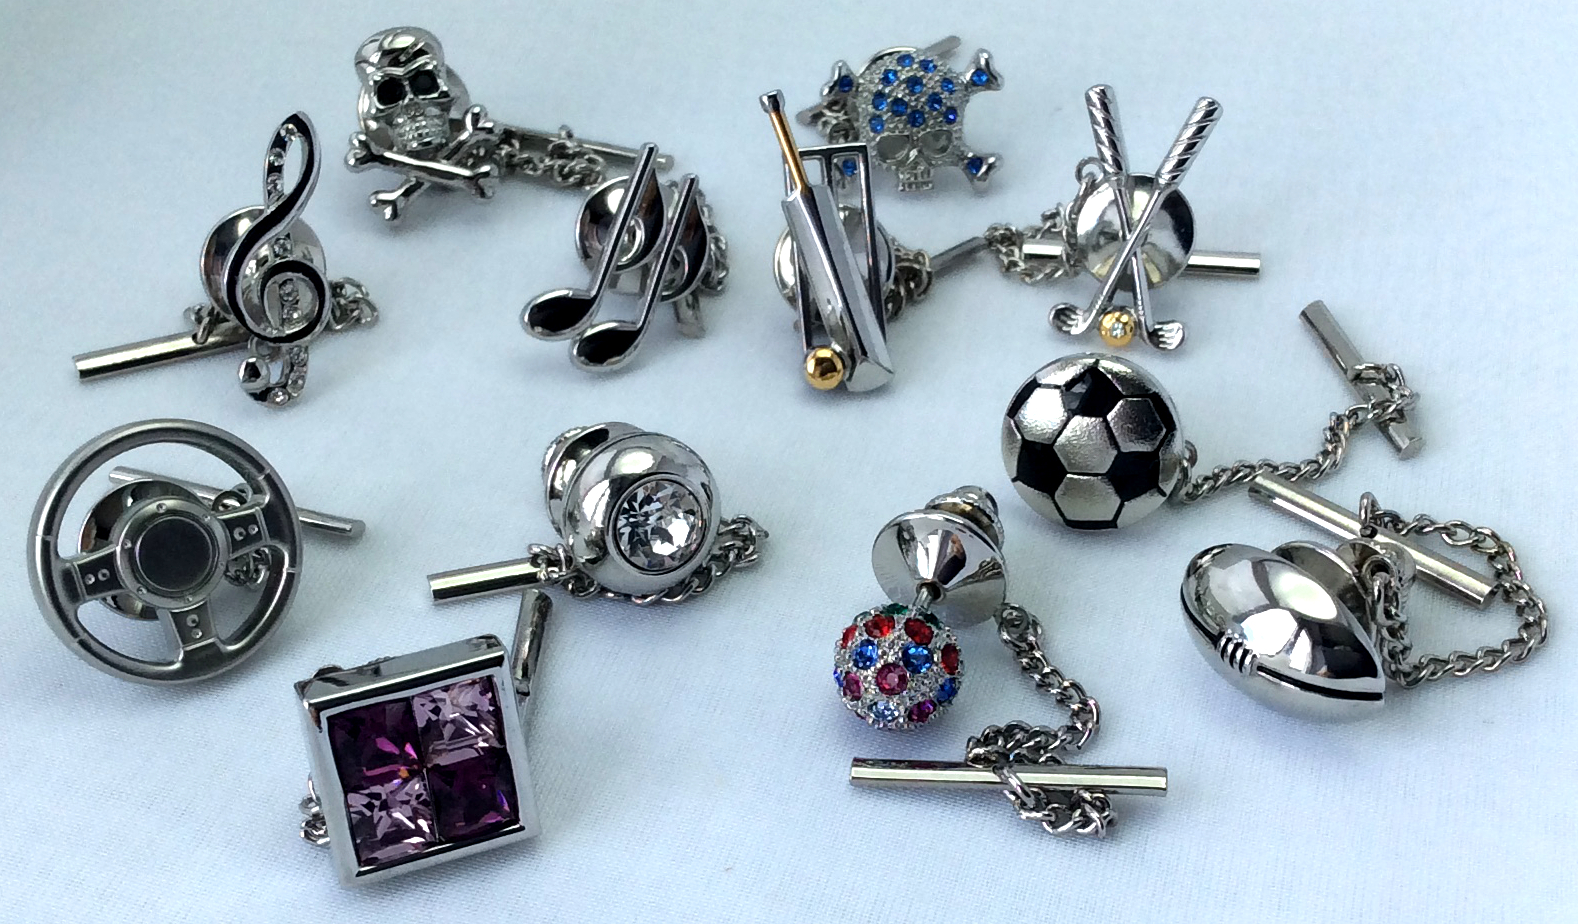 Choose from our excellent range of Tie Pins at CufflinksWorld.com